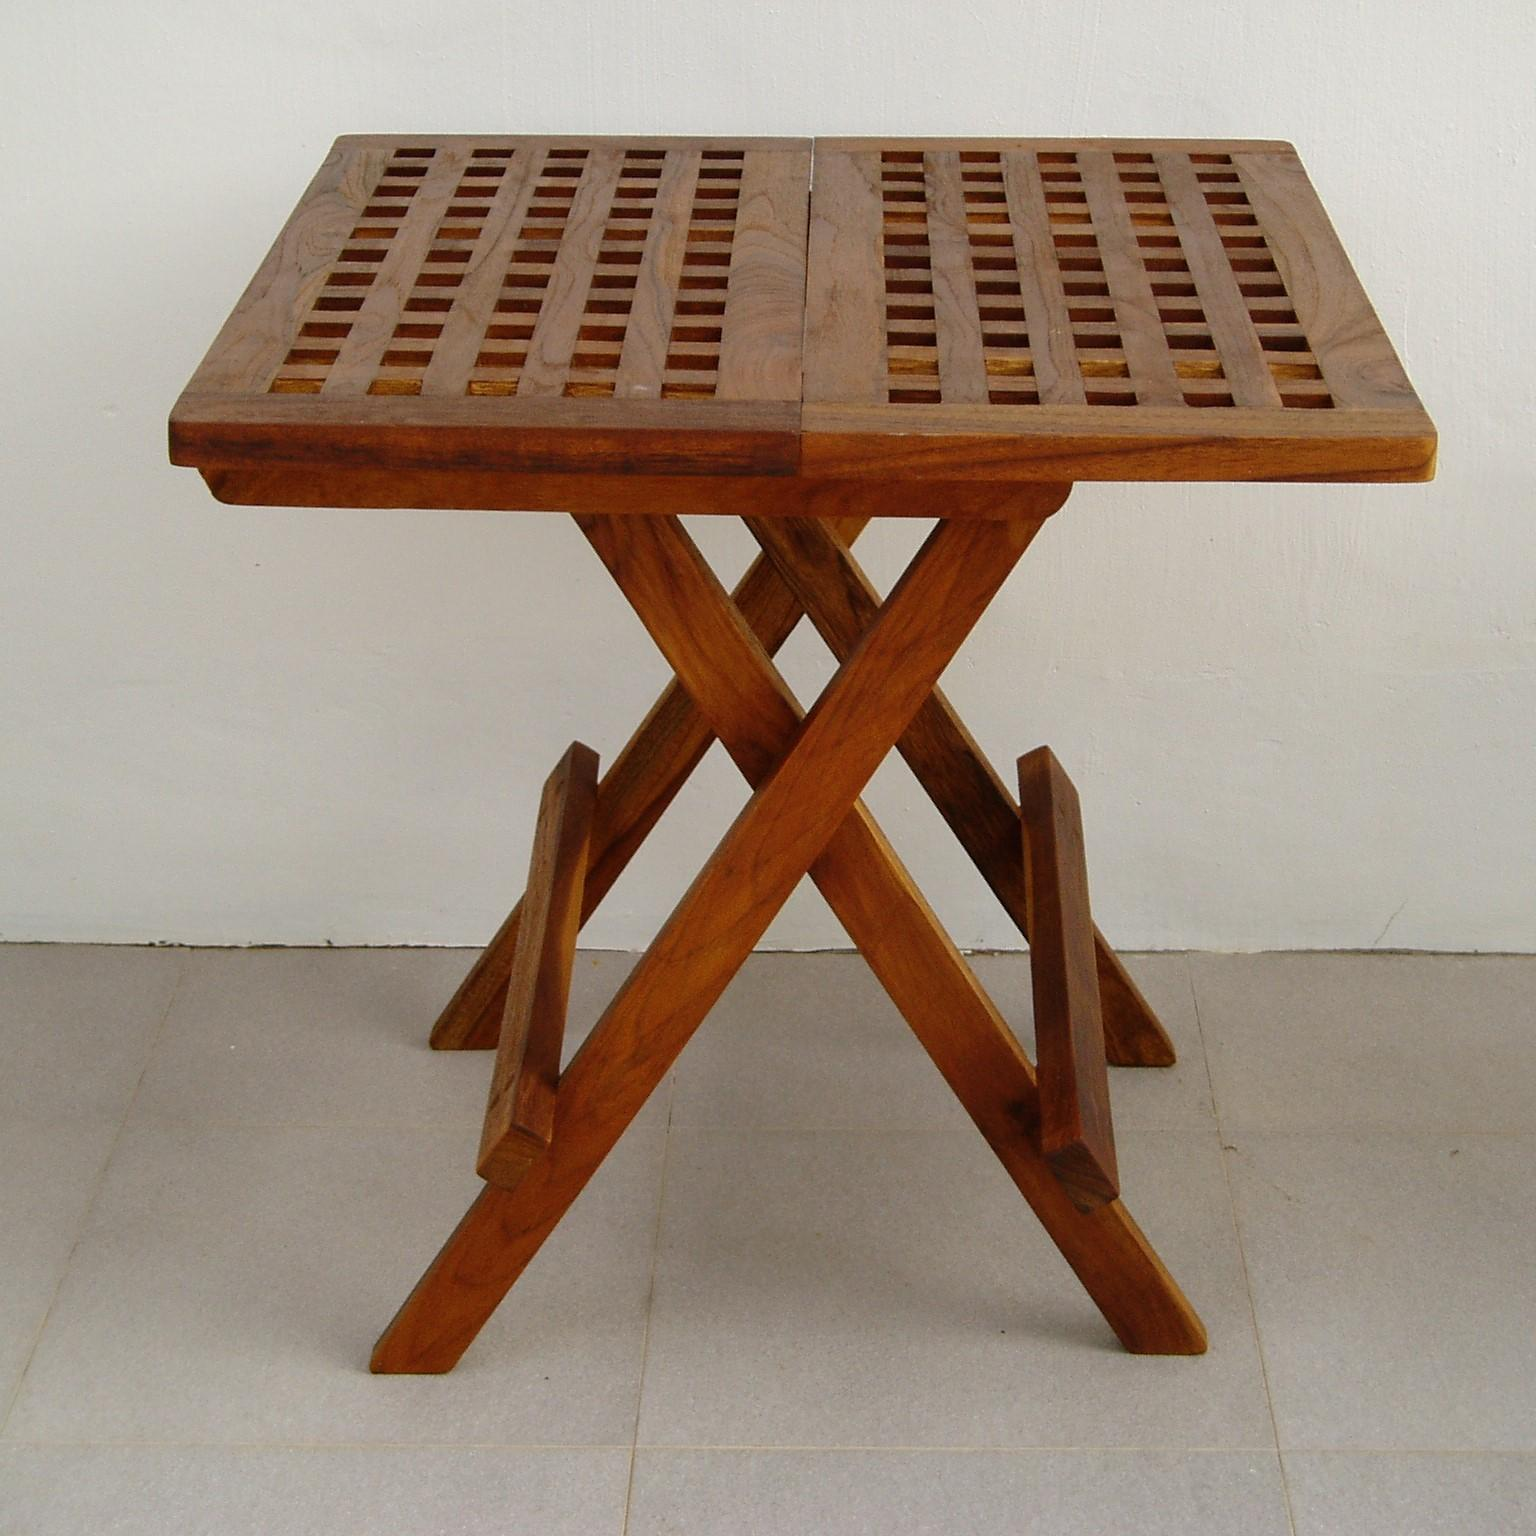 Levante Teakwood Picnic Table with Natural Wood Color (Size:W50 x D50 x H50cm)